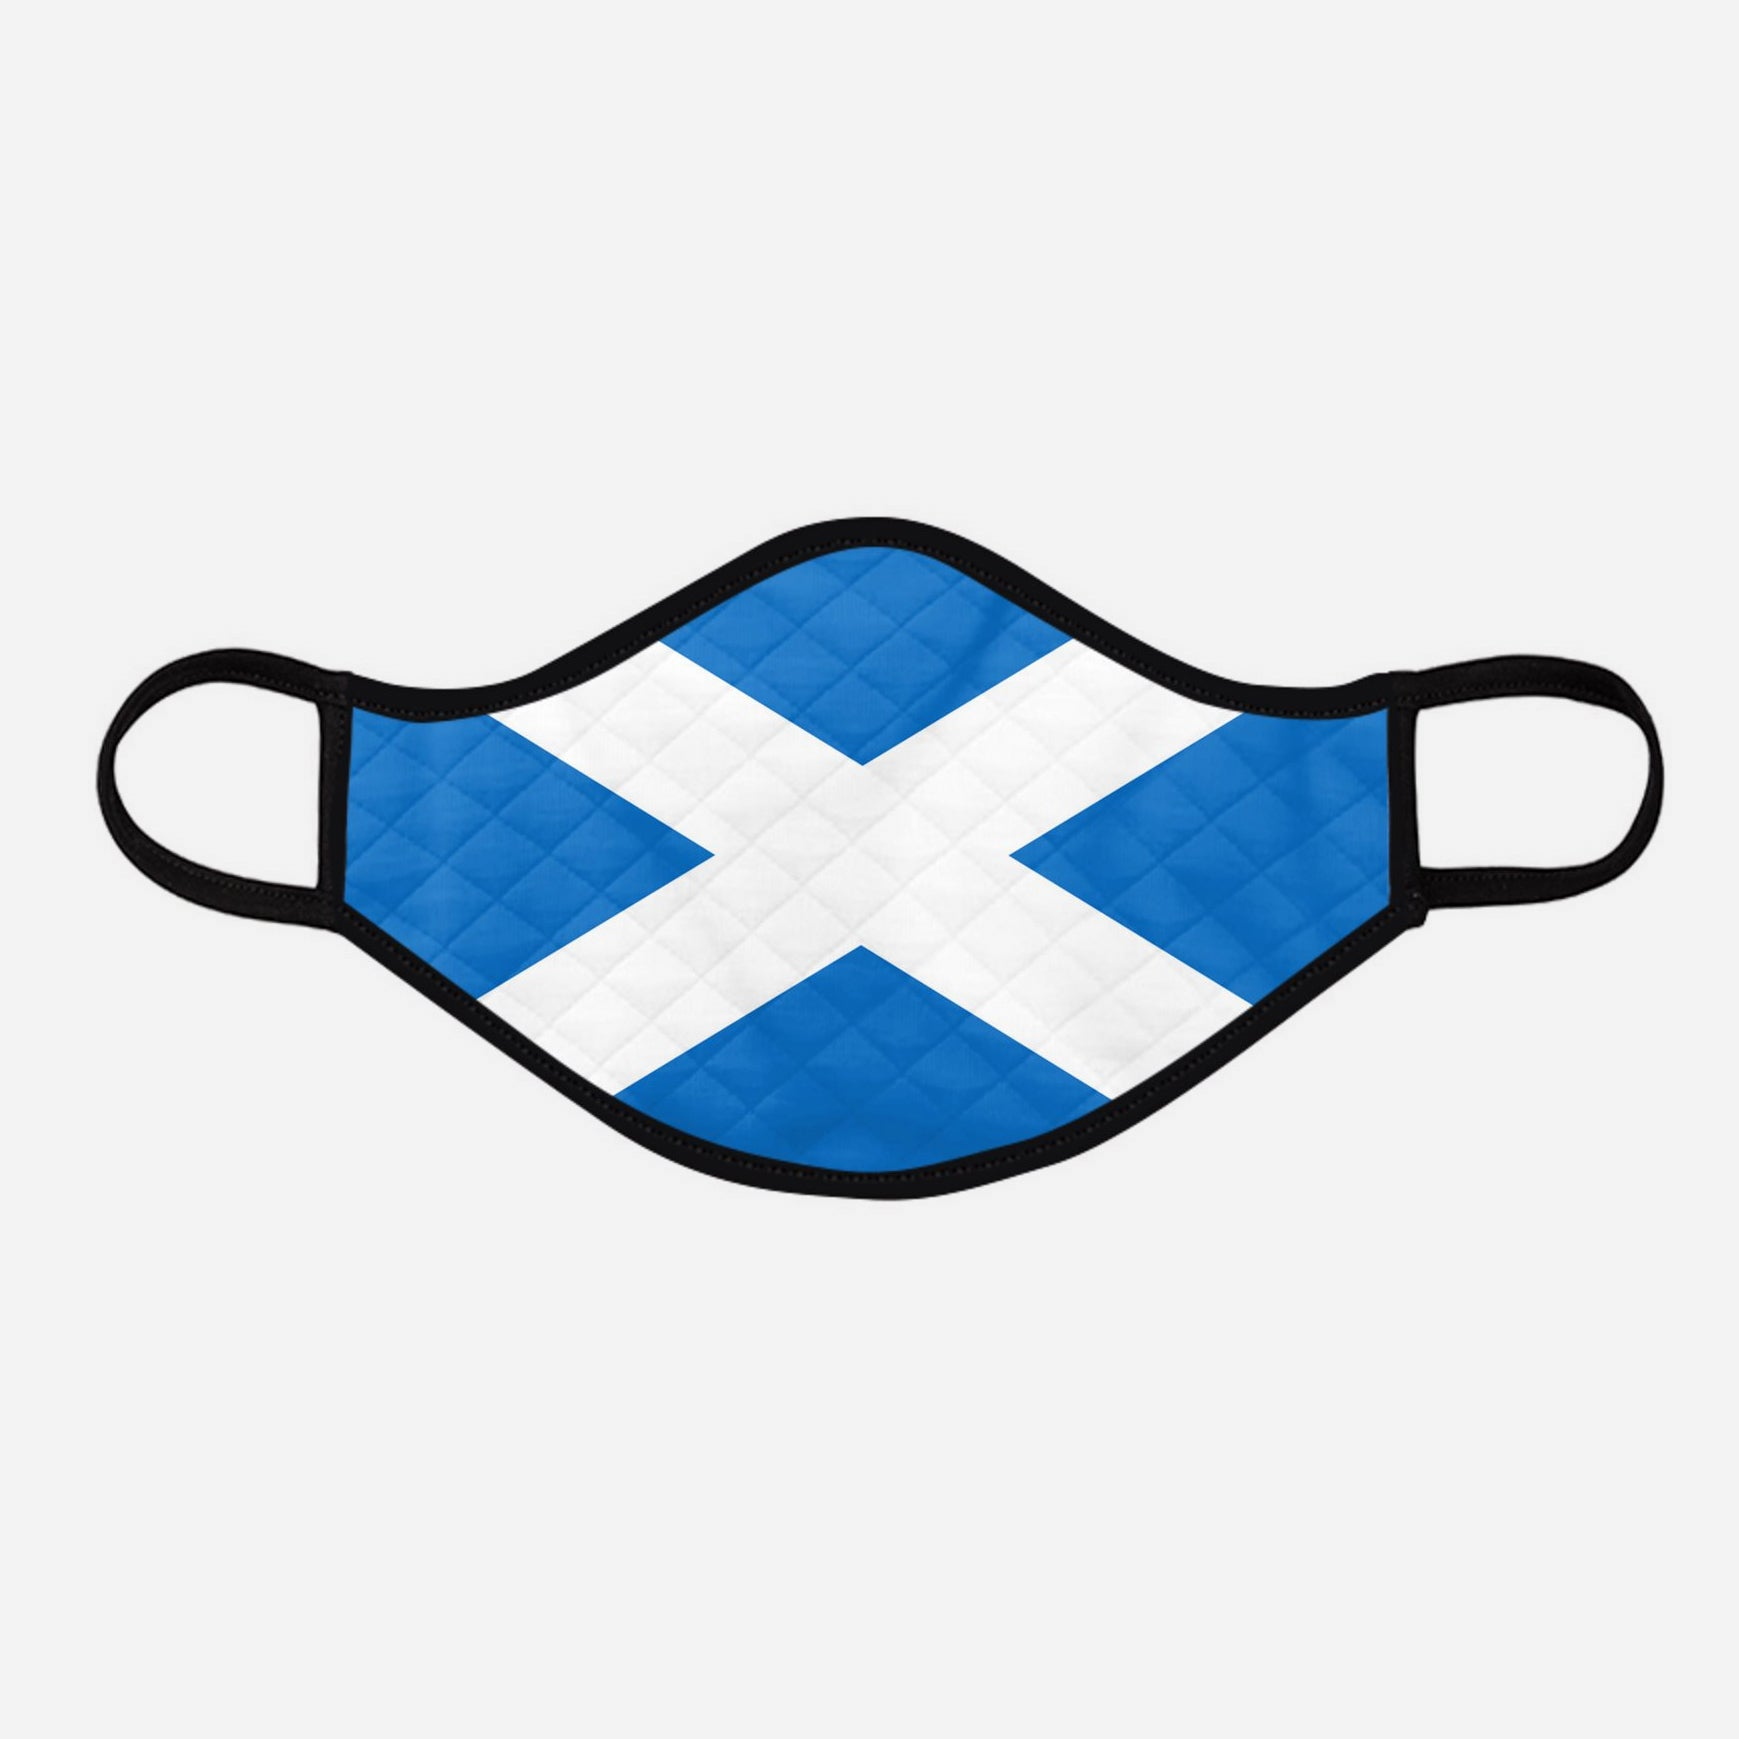 Contoured Face Mask - face covering - Nicola Sturgeon - Scottish Scotland Scots Saltire St Andrew's Cross - by Steven Patrick Sim the Tartan Artisan - Stevie Tartan Guy - large